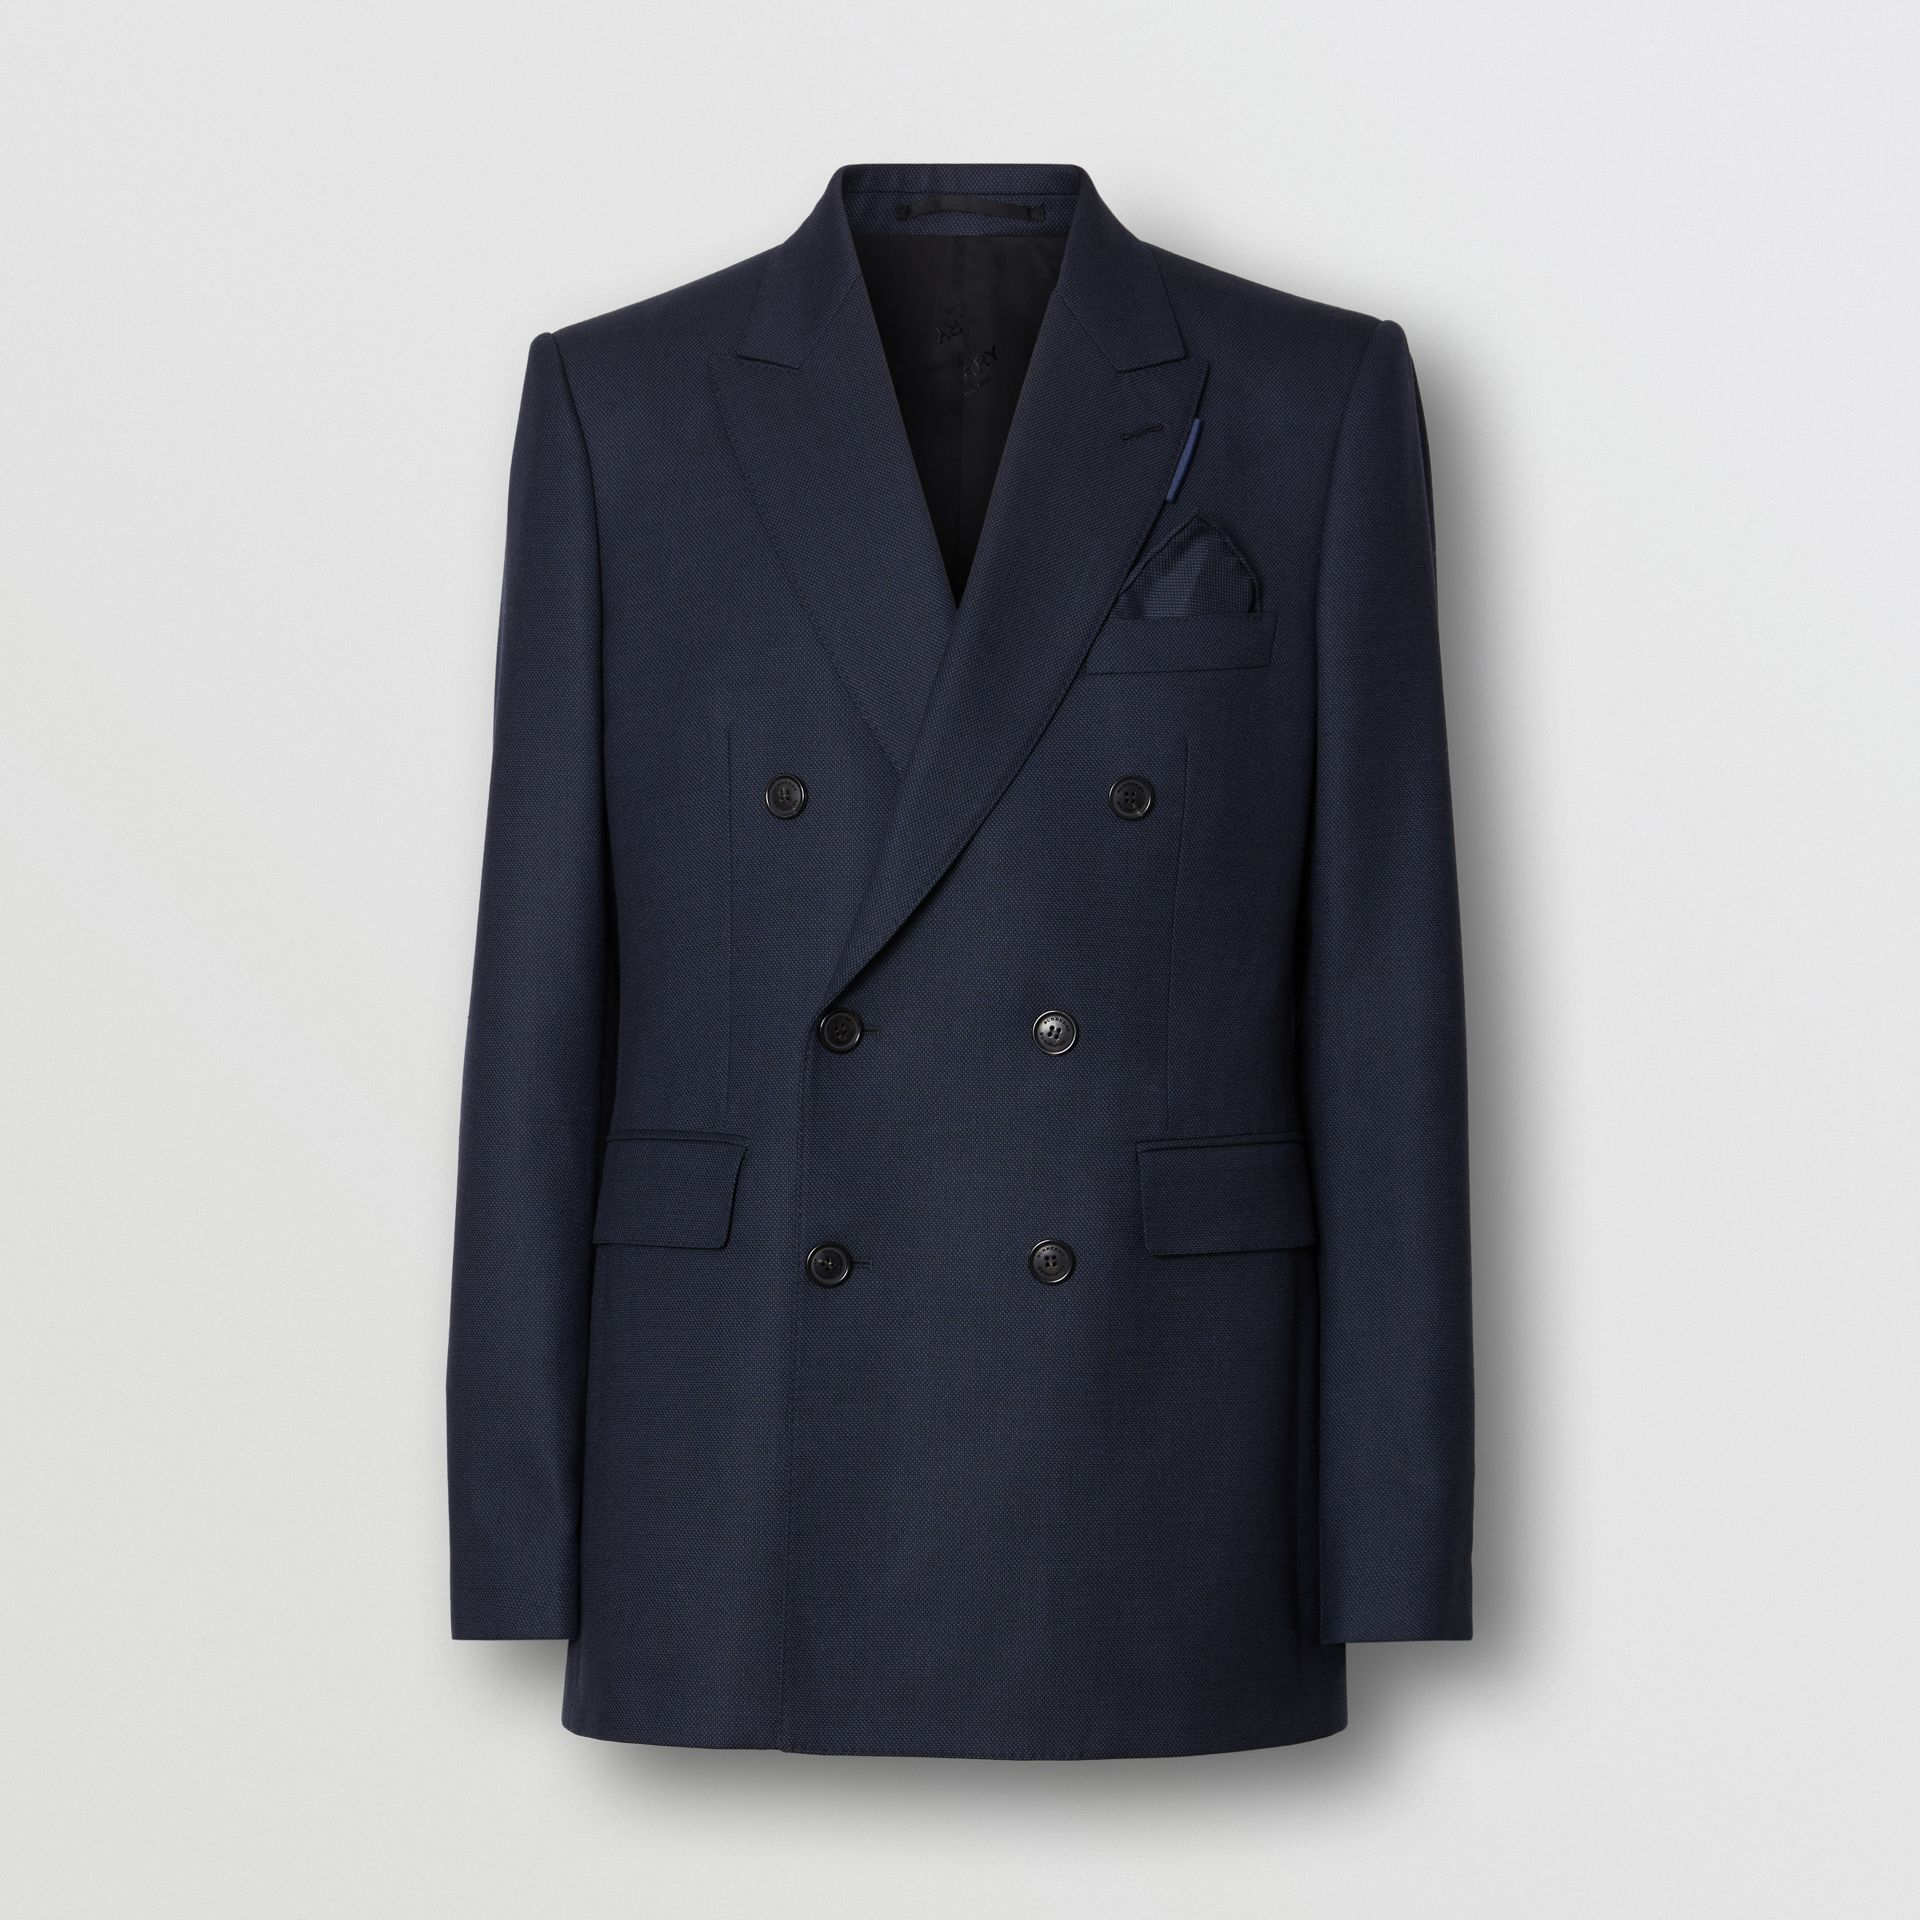 English Fit Birdseye Wool Cashmere Suit in Navy Blue | Burberry Singapore - gallery image 3